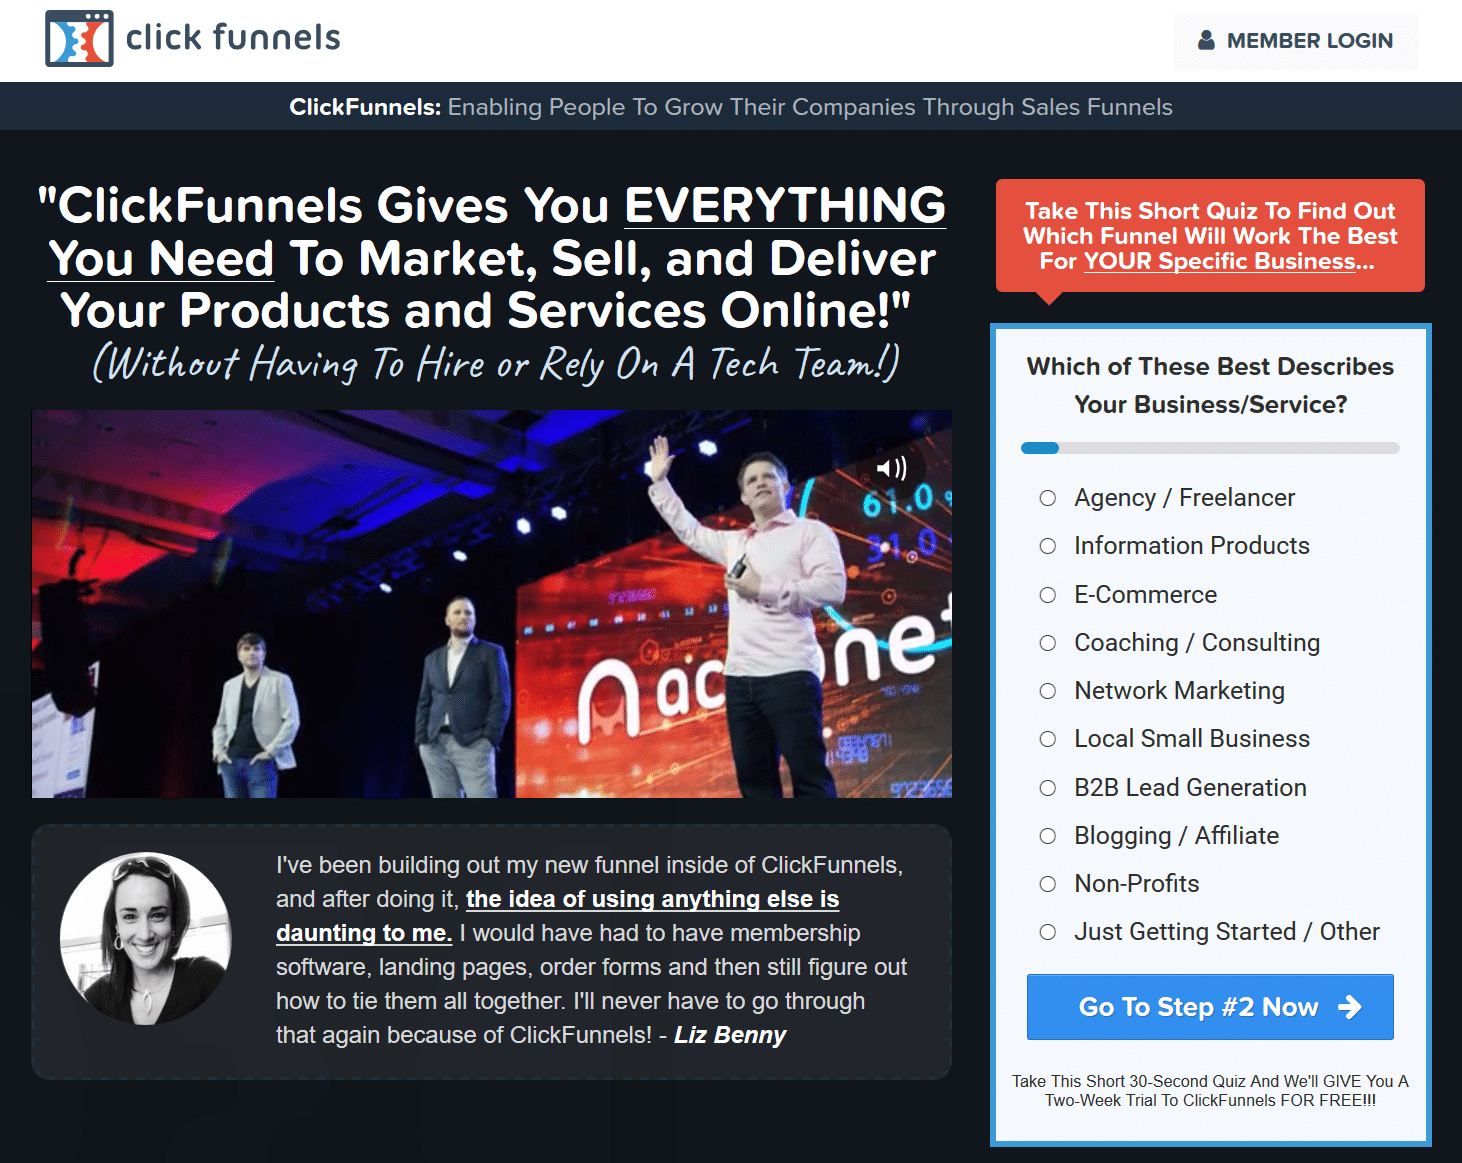 How To Play The Clickfunnels Game